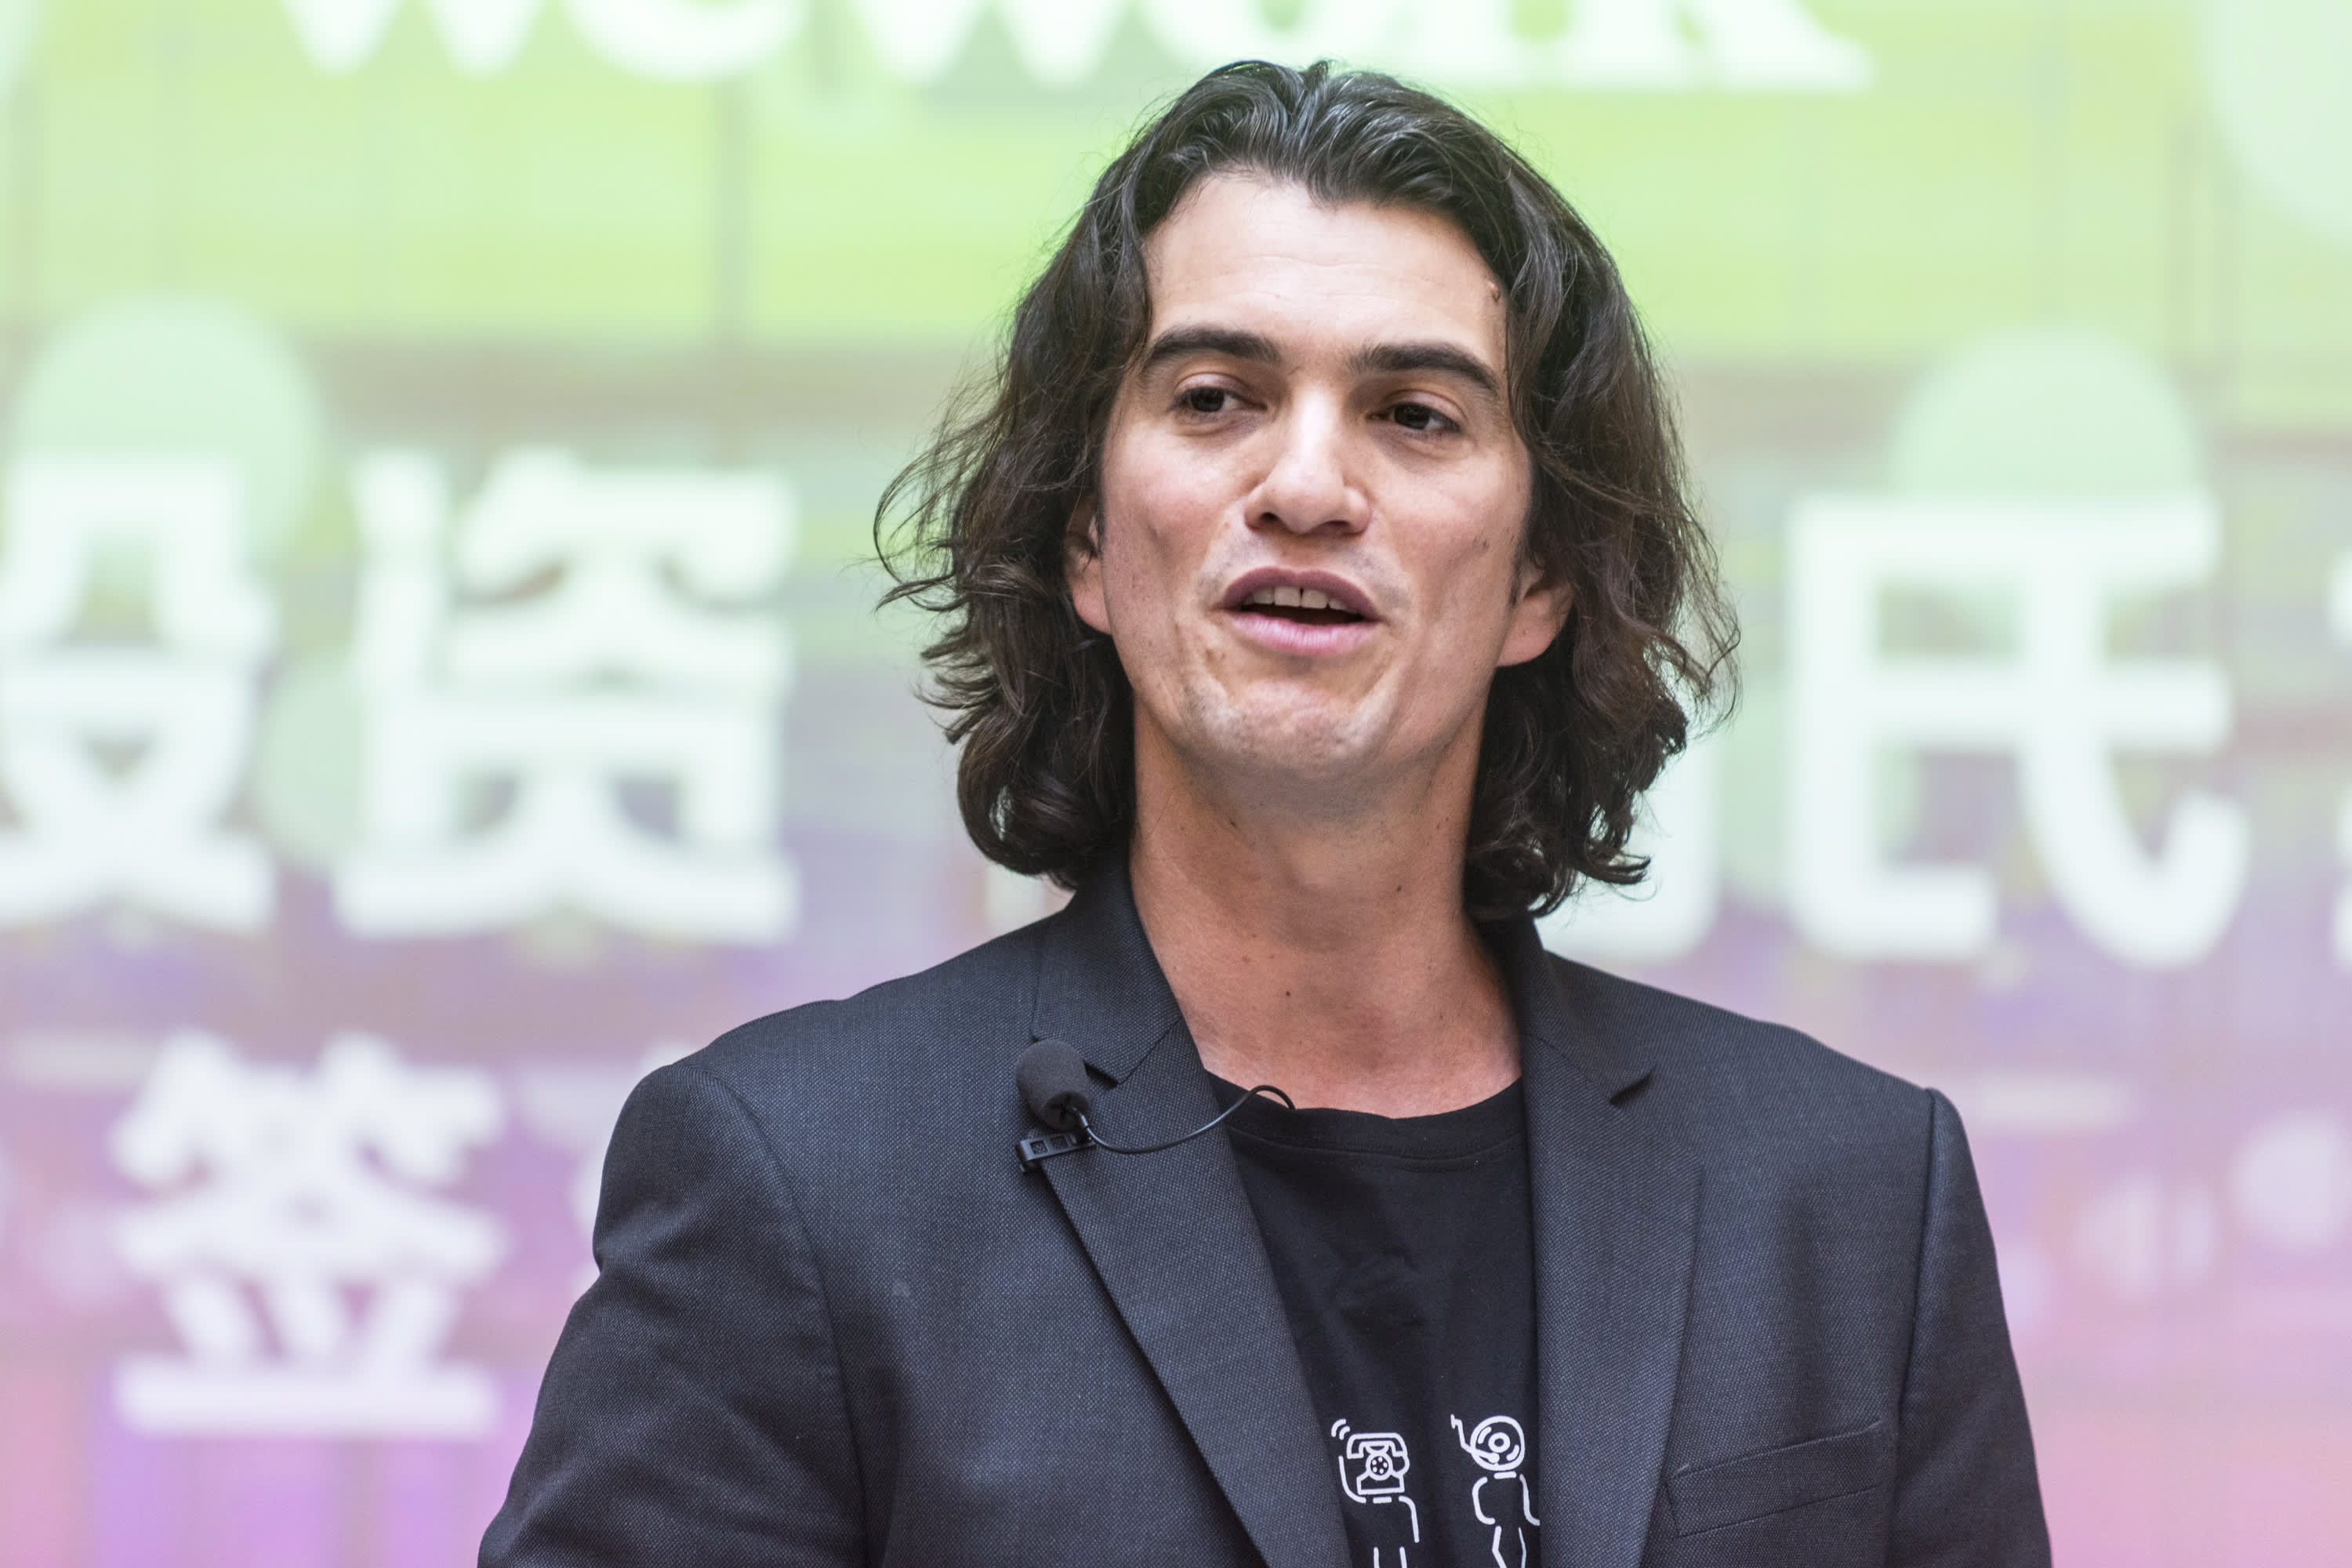 WeWork's Adam Neumann wants to live forever, be king of the world and the first trillionaire, says report